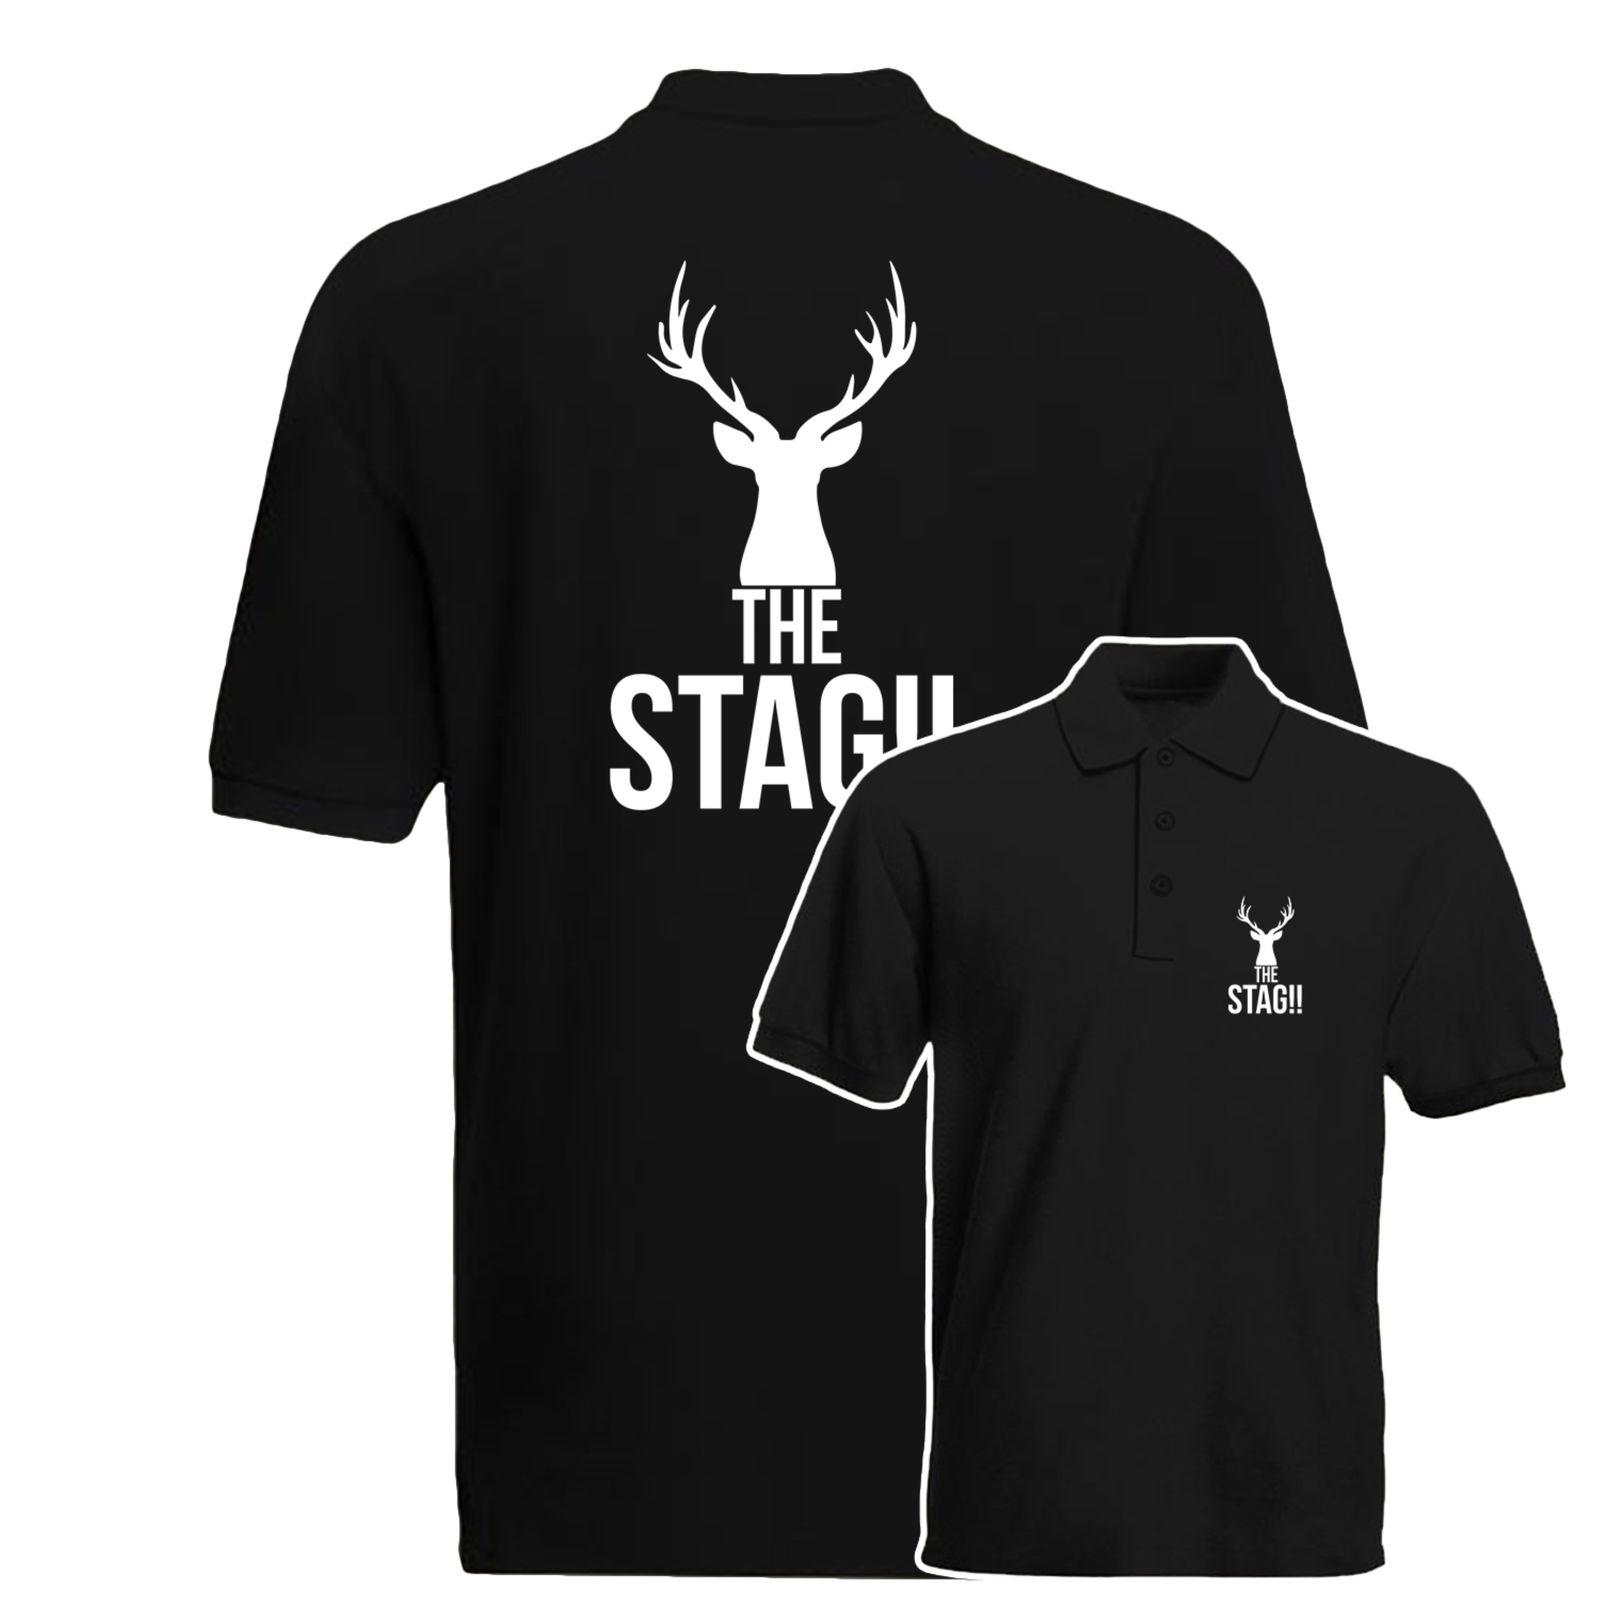 b65e8ff1 The Stag Polo Shirt, Stag Do, Hen Do, Bachelor Party Gift Polo Top Cotton  Men T Shirts Classical Top Tee Basic O Neck Fashion White Shirt Tee Shirts  From ...